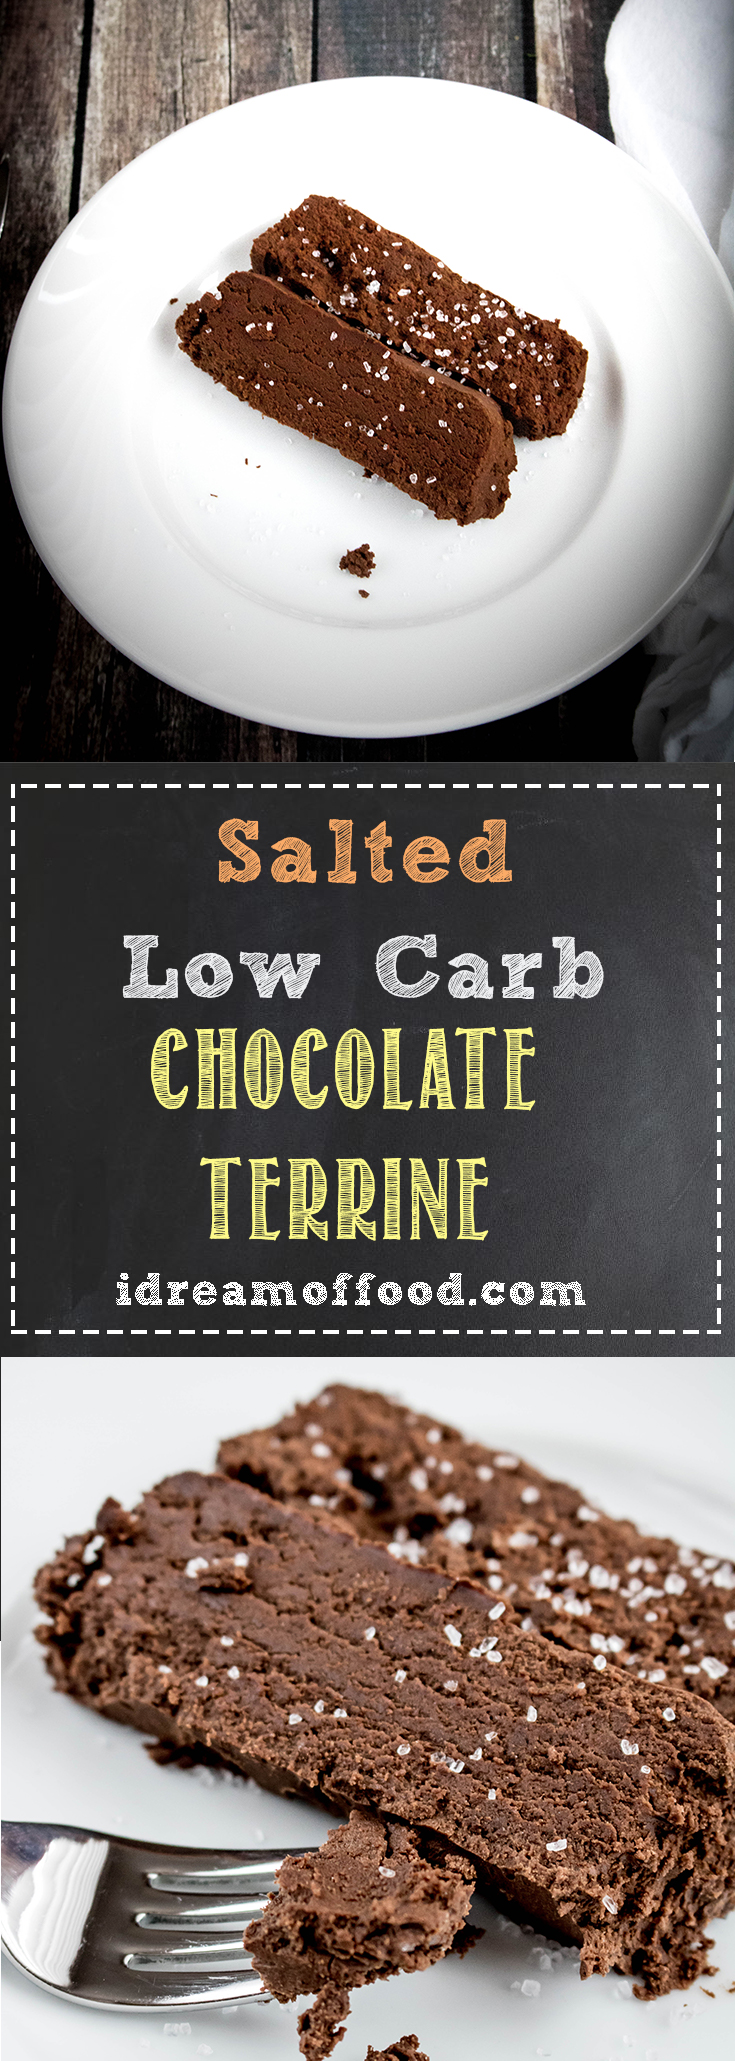 Low Carb Salted Chocolate Terrine Recipe I Dream Of Food